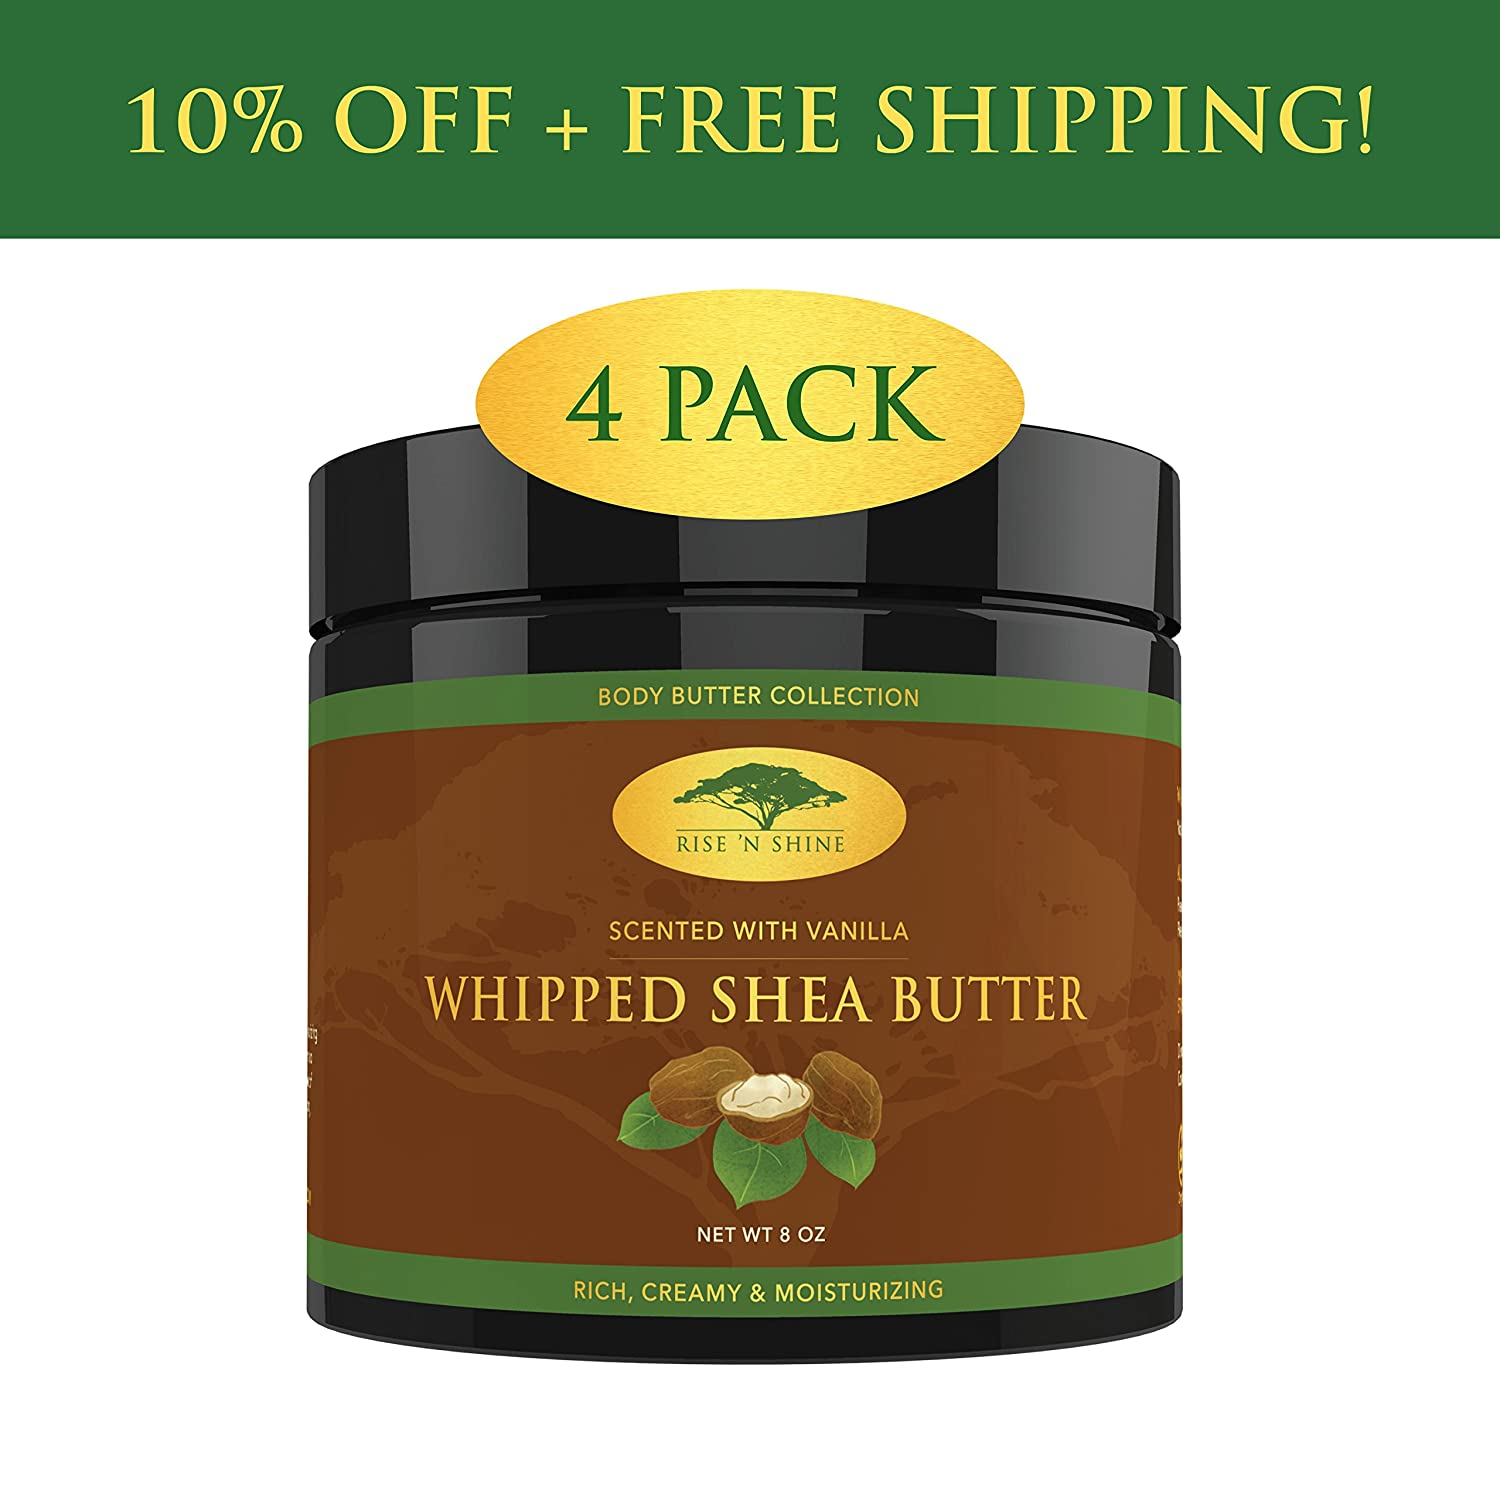 (8 oz) Whipped African Shea Butter Cream - Pure 100% All Natural Organic Moisture for Soft Skin and Natural Hair - Body Butter Improves Blemishes Stretch Marks Scars Wrinkles Eczema & Dermatitis Rise 'N Shine Online